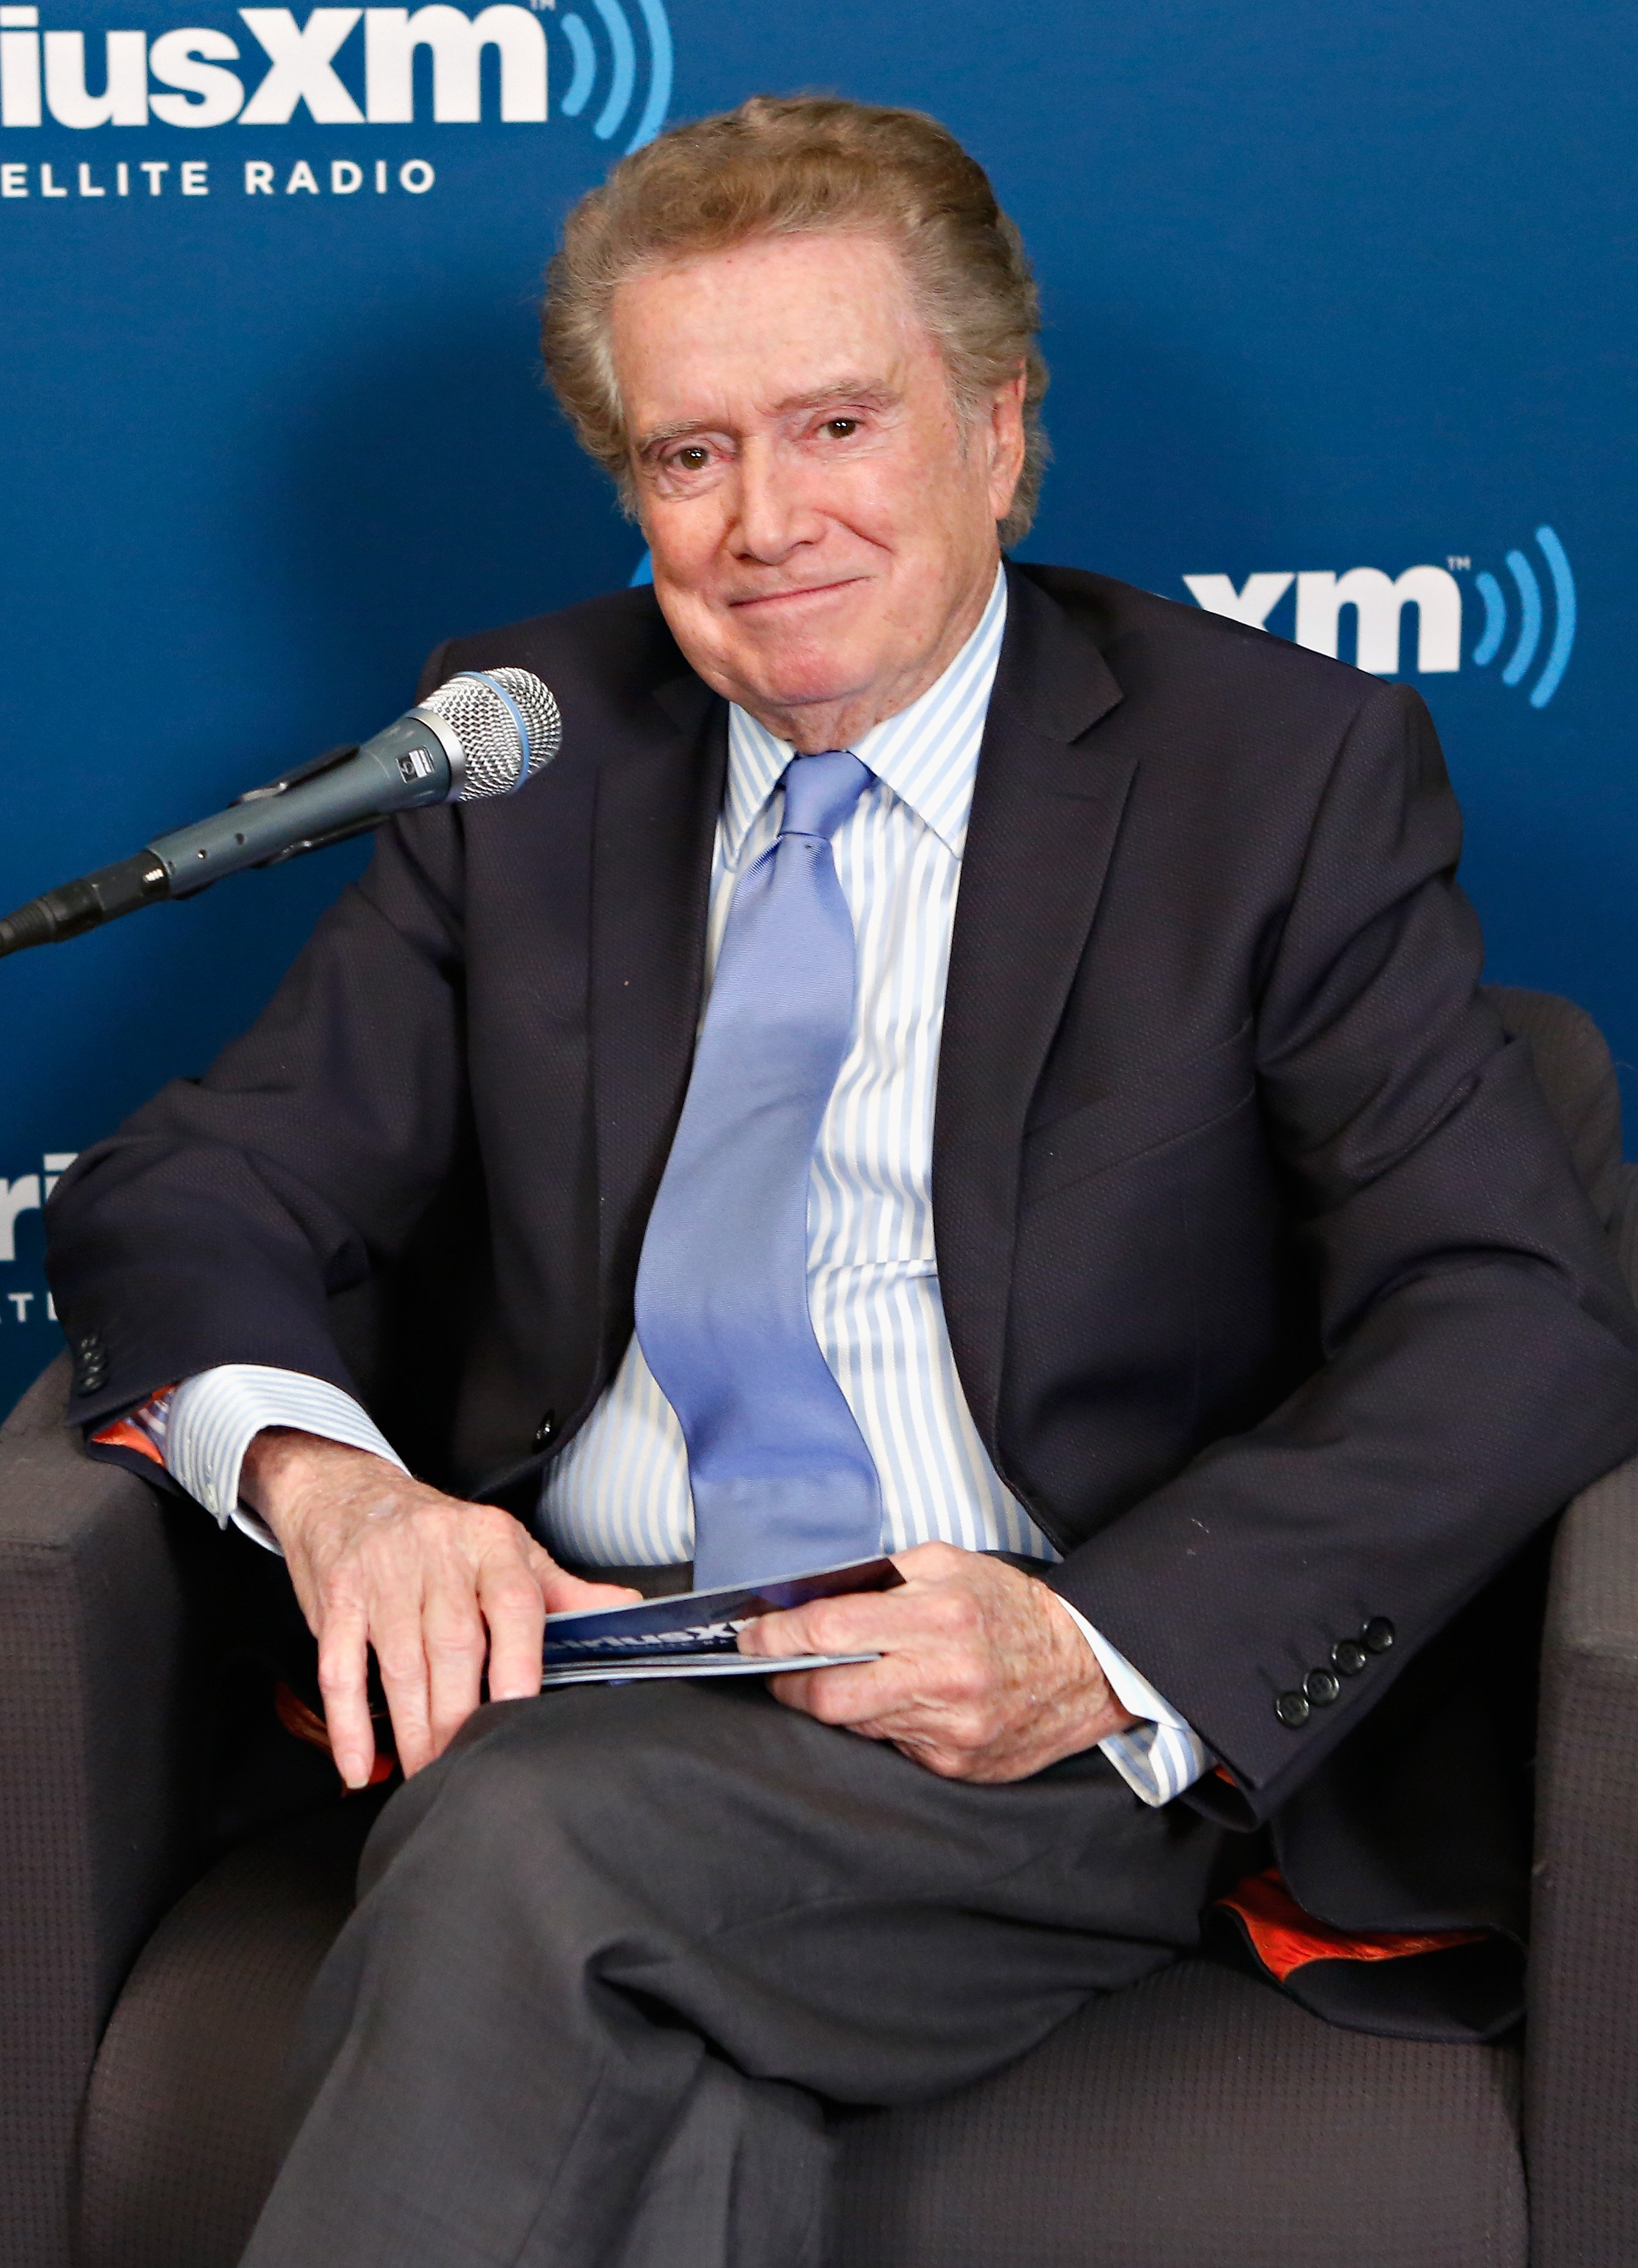 Image Credits: Getty Images | Regis Philbin is one of the most recognized faces in American TV